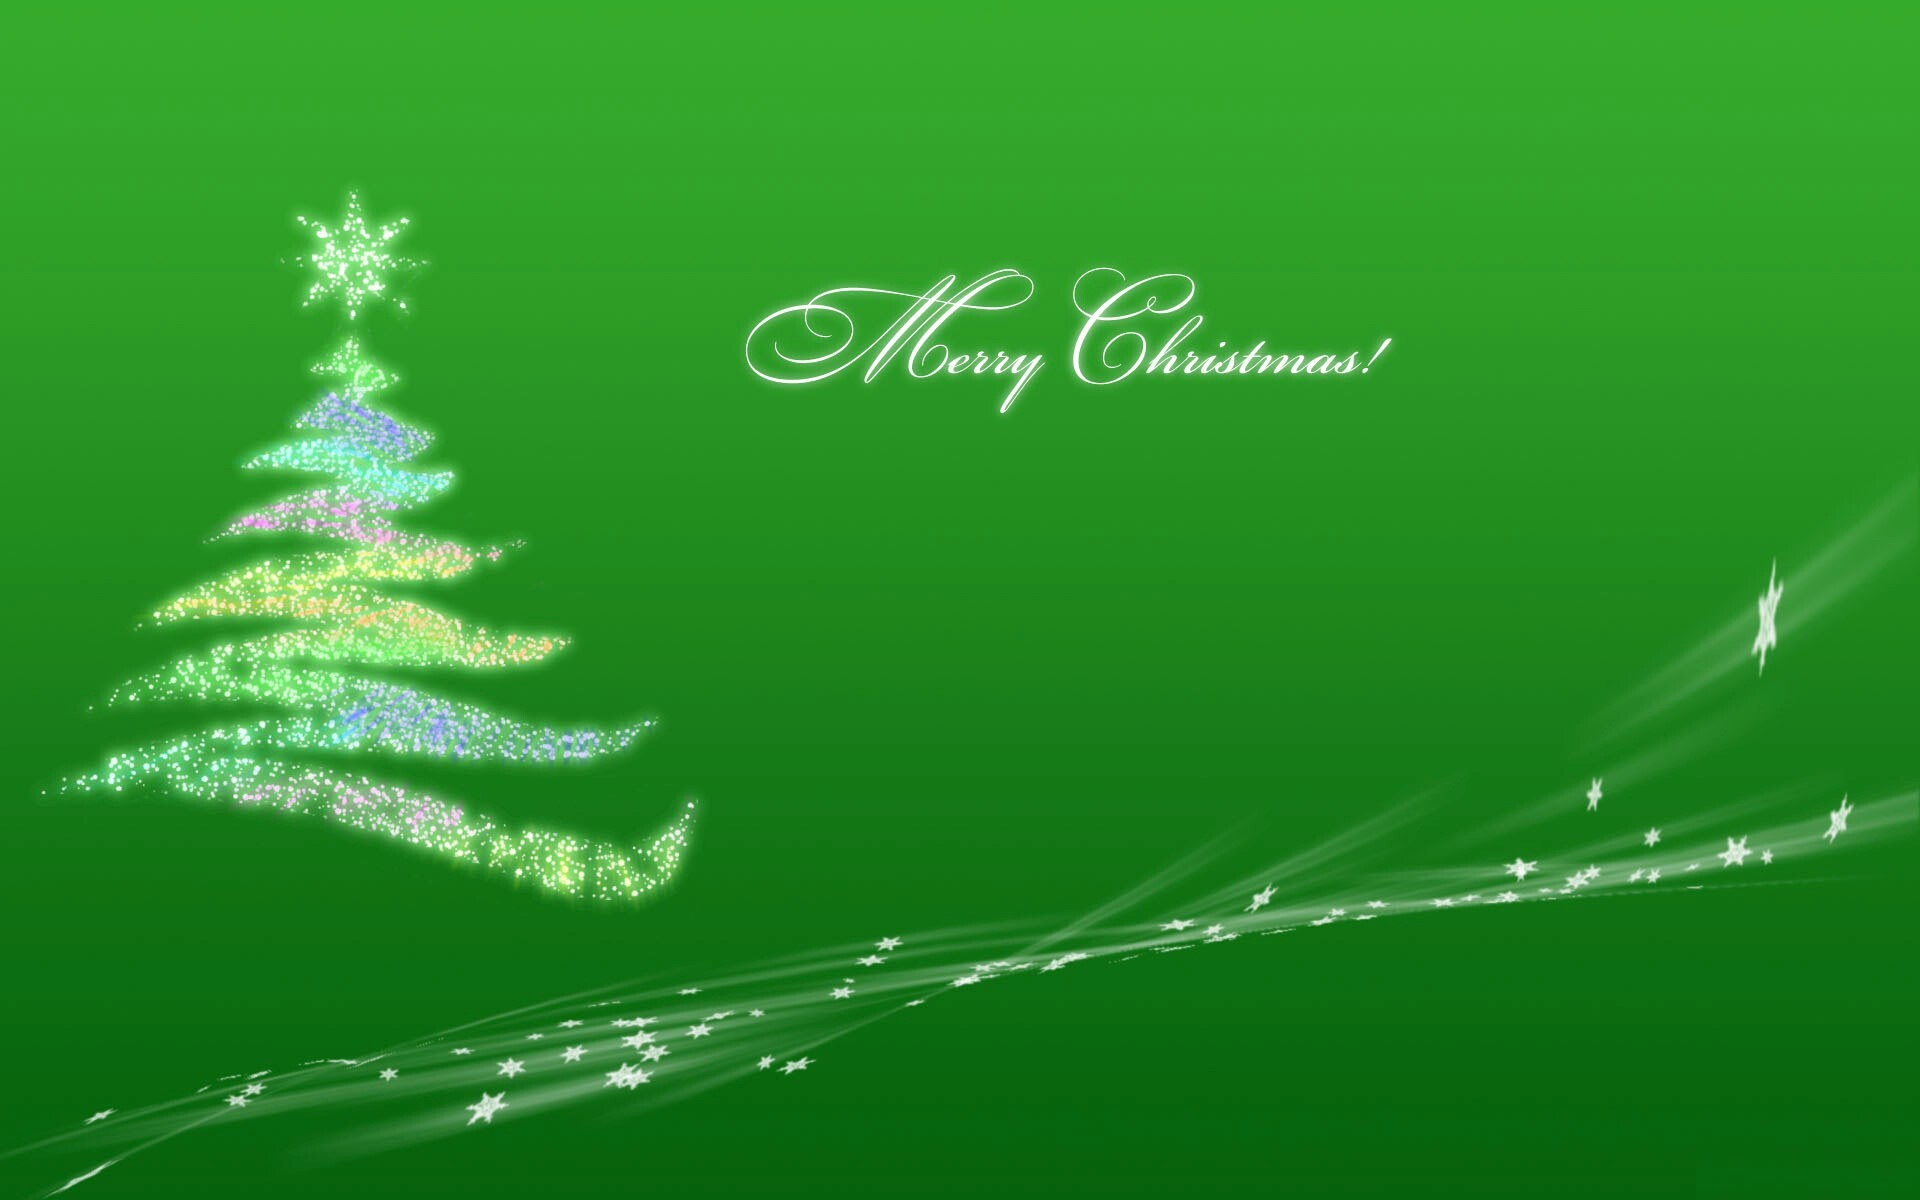 Thoughts Quotes Wallpaper Merry Christmas Green Wallpaper On Christmas Holiday Free